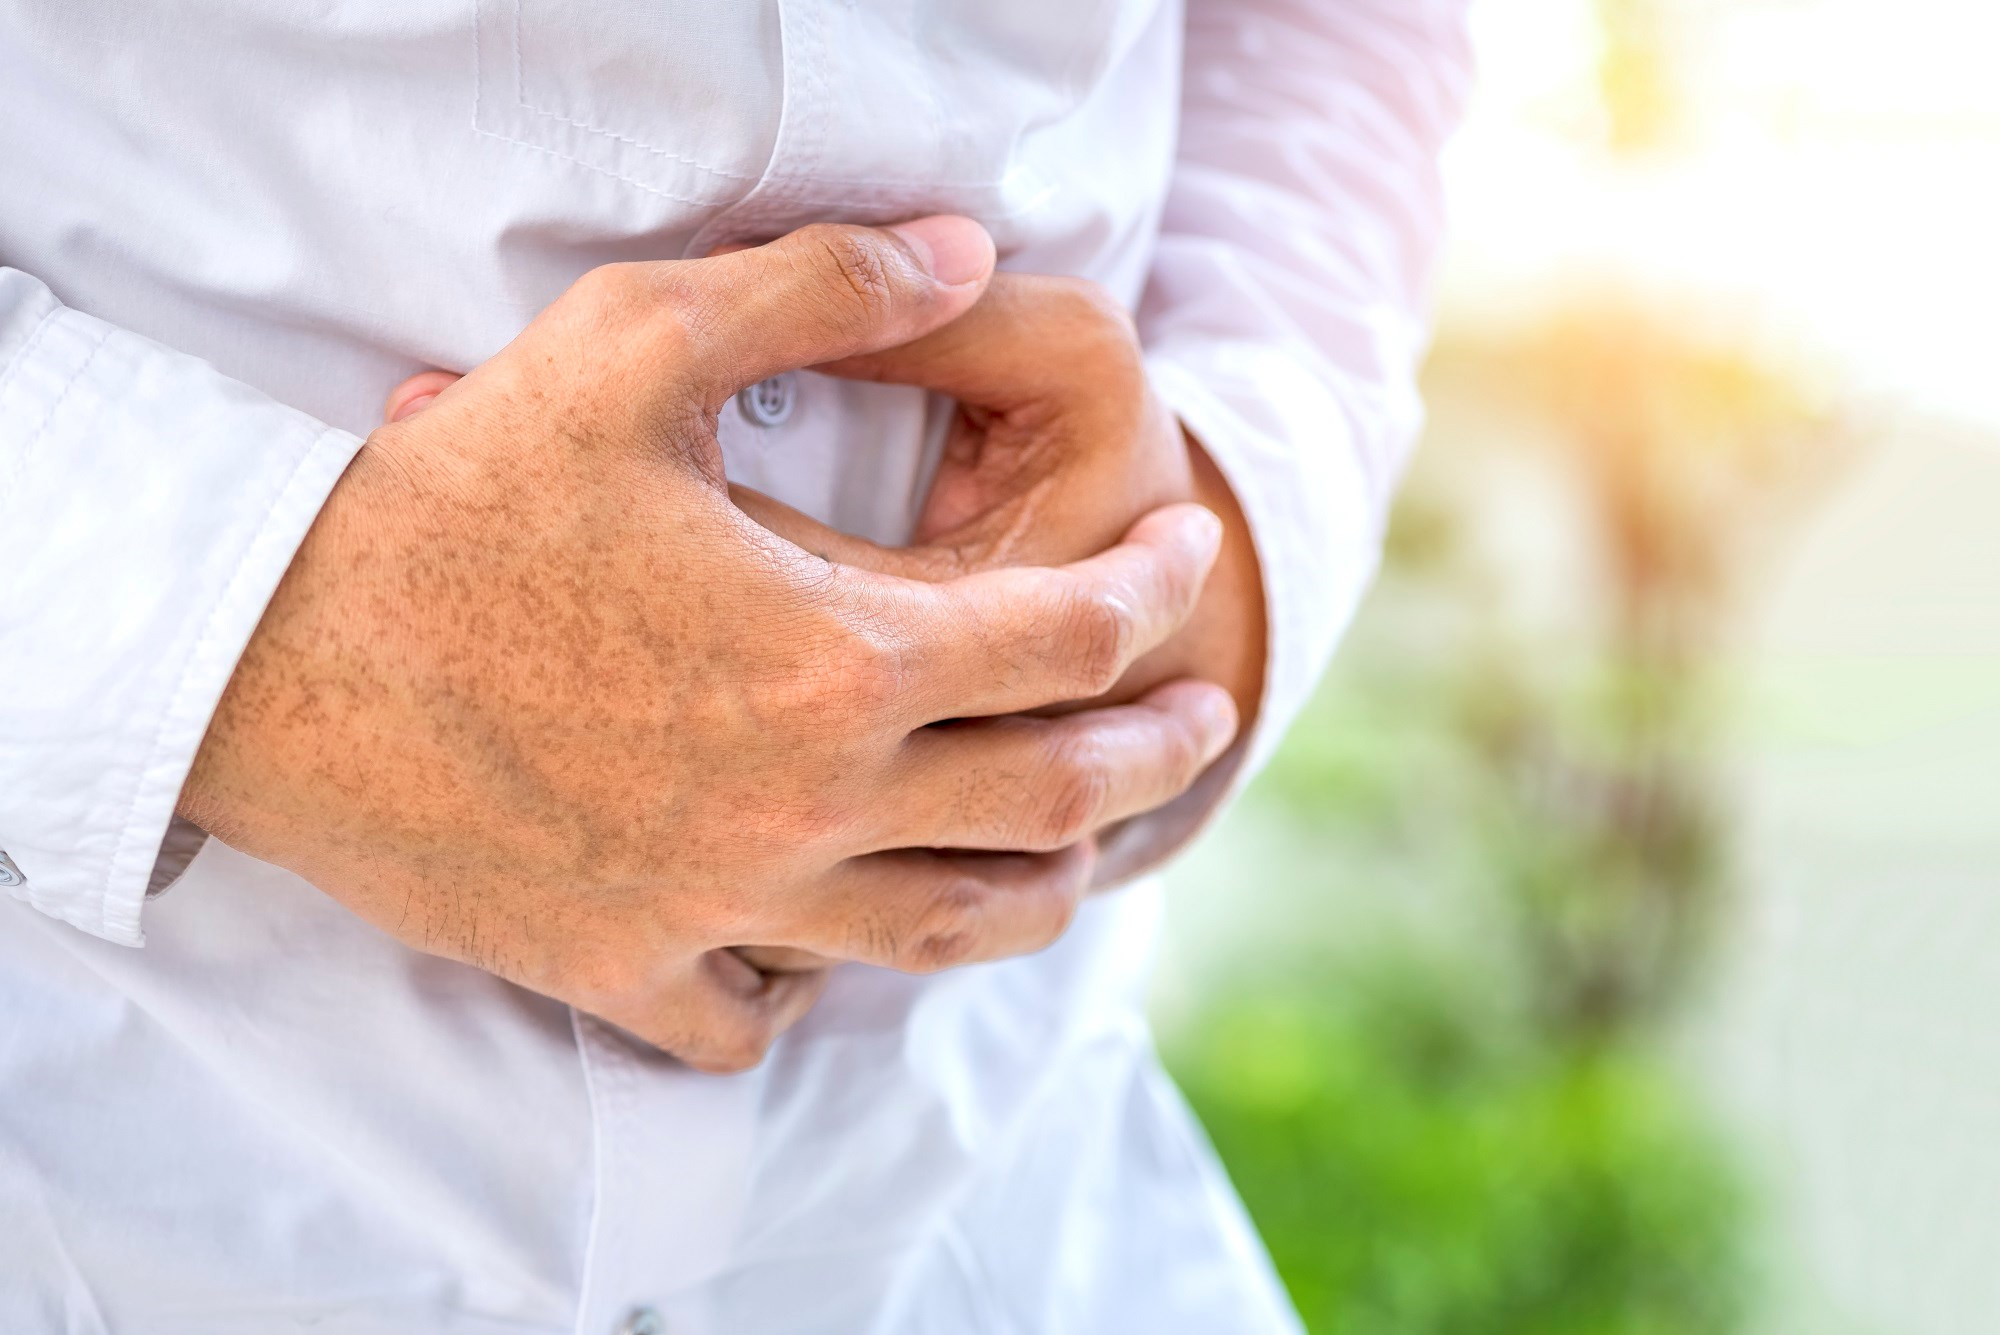 Novel Blood Test for Irritable Bowel Syndrome Now Available